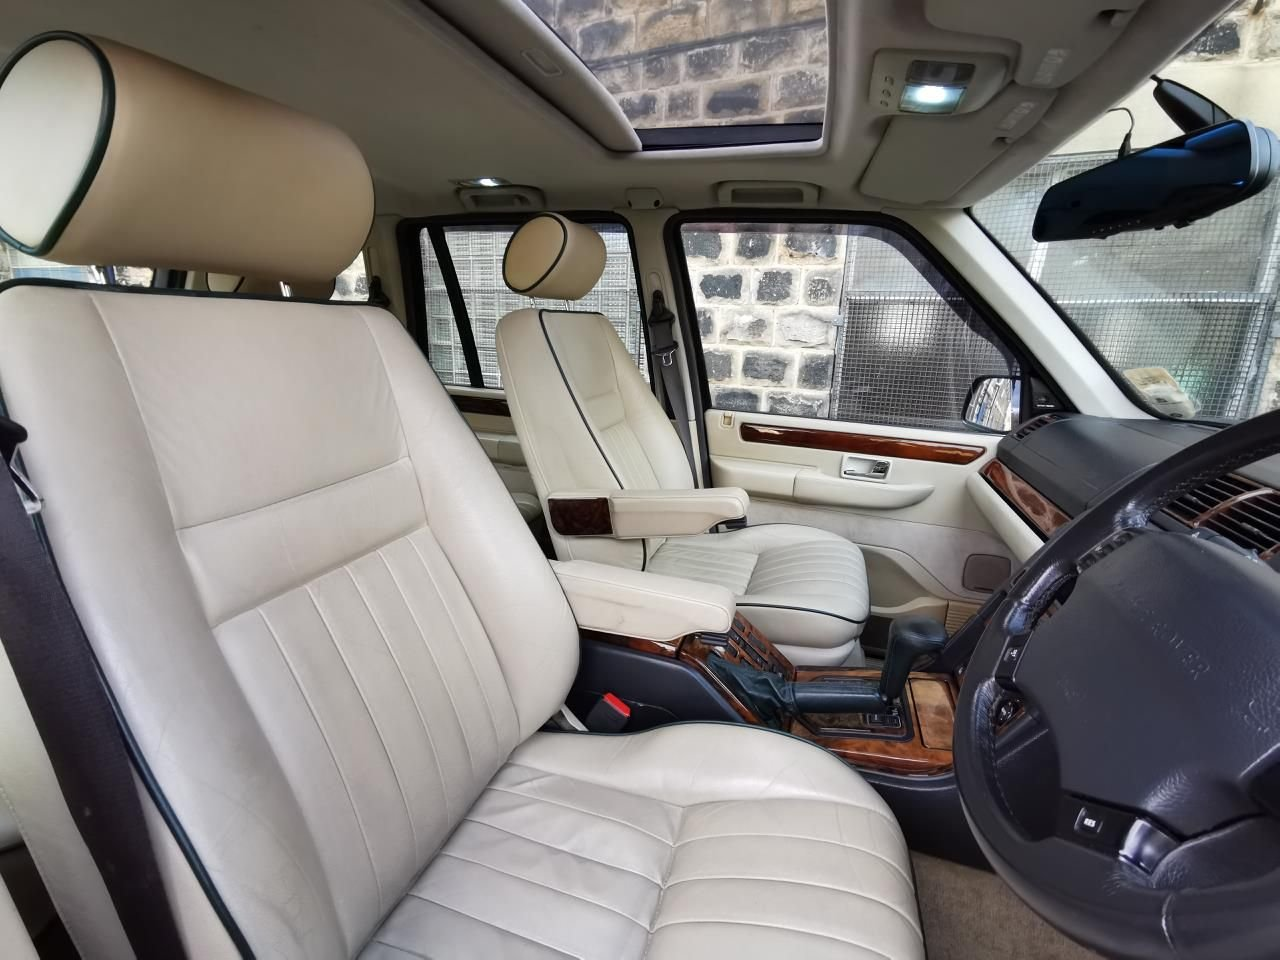 1999 Range Rover Vogue SE 1 of 30 cars, 1 Year Warranty For Sale (picture 2 of 6)